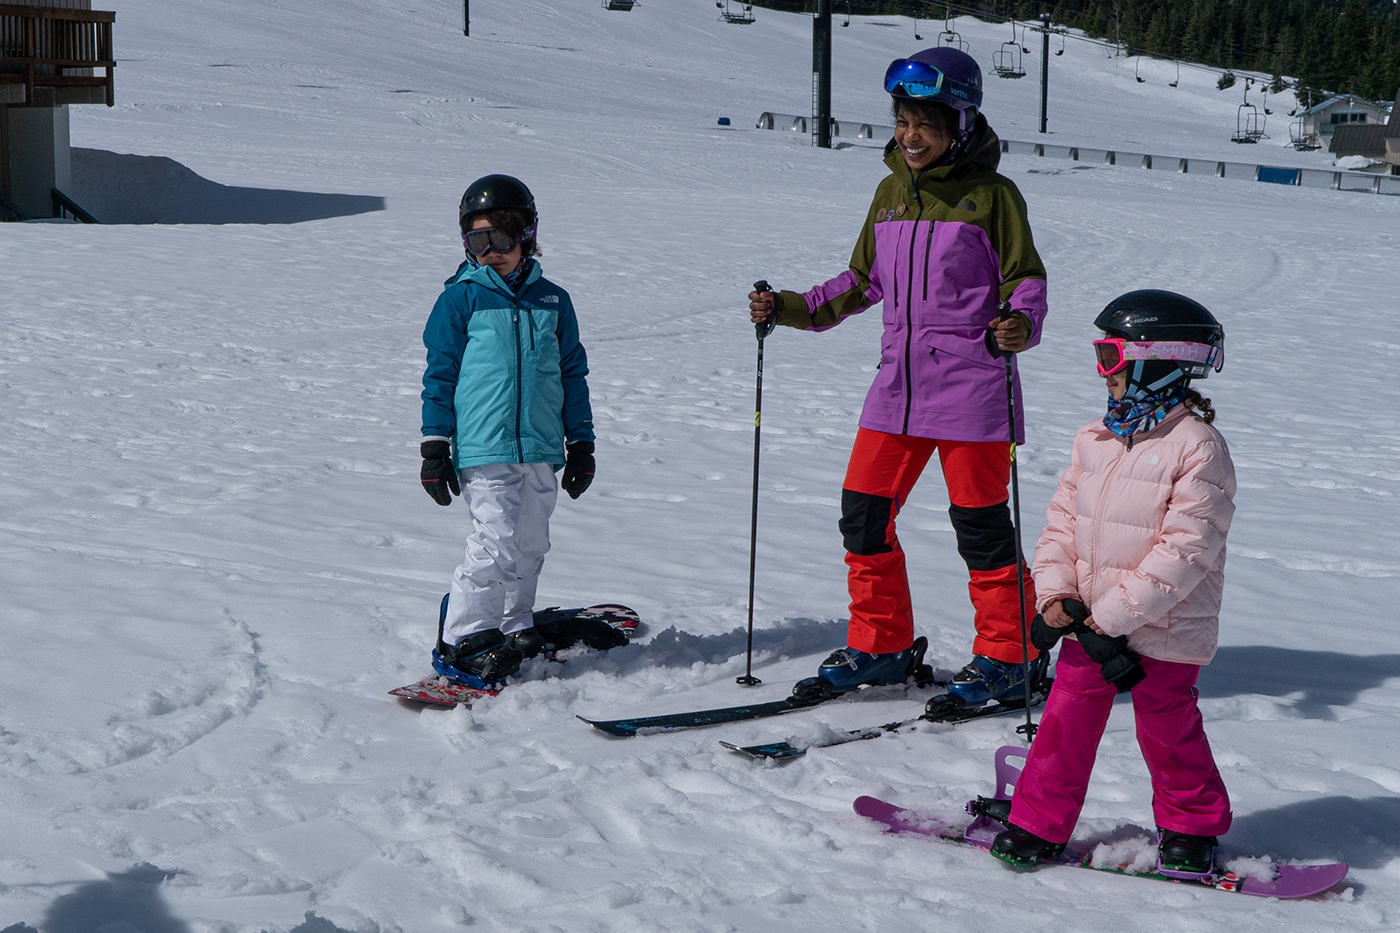 A family skis and snowboard